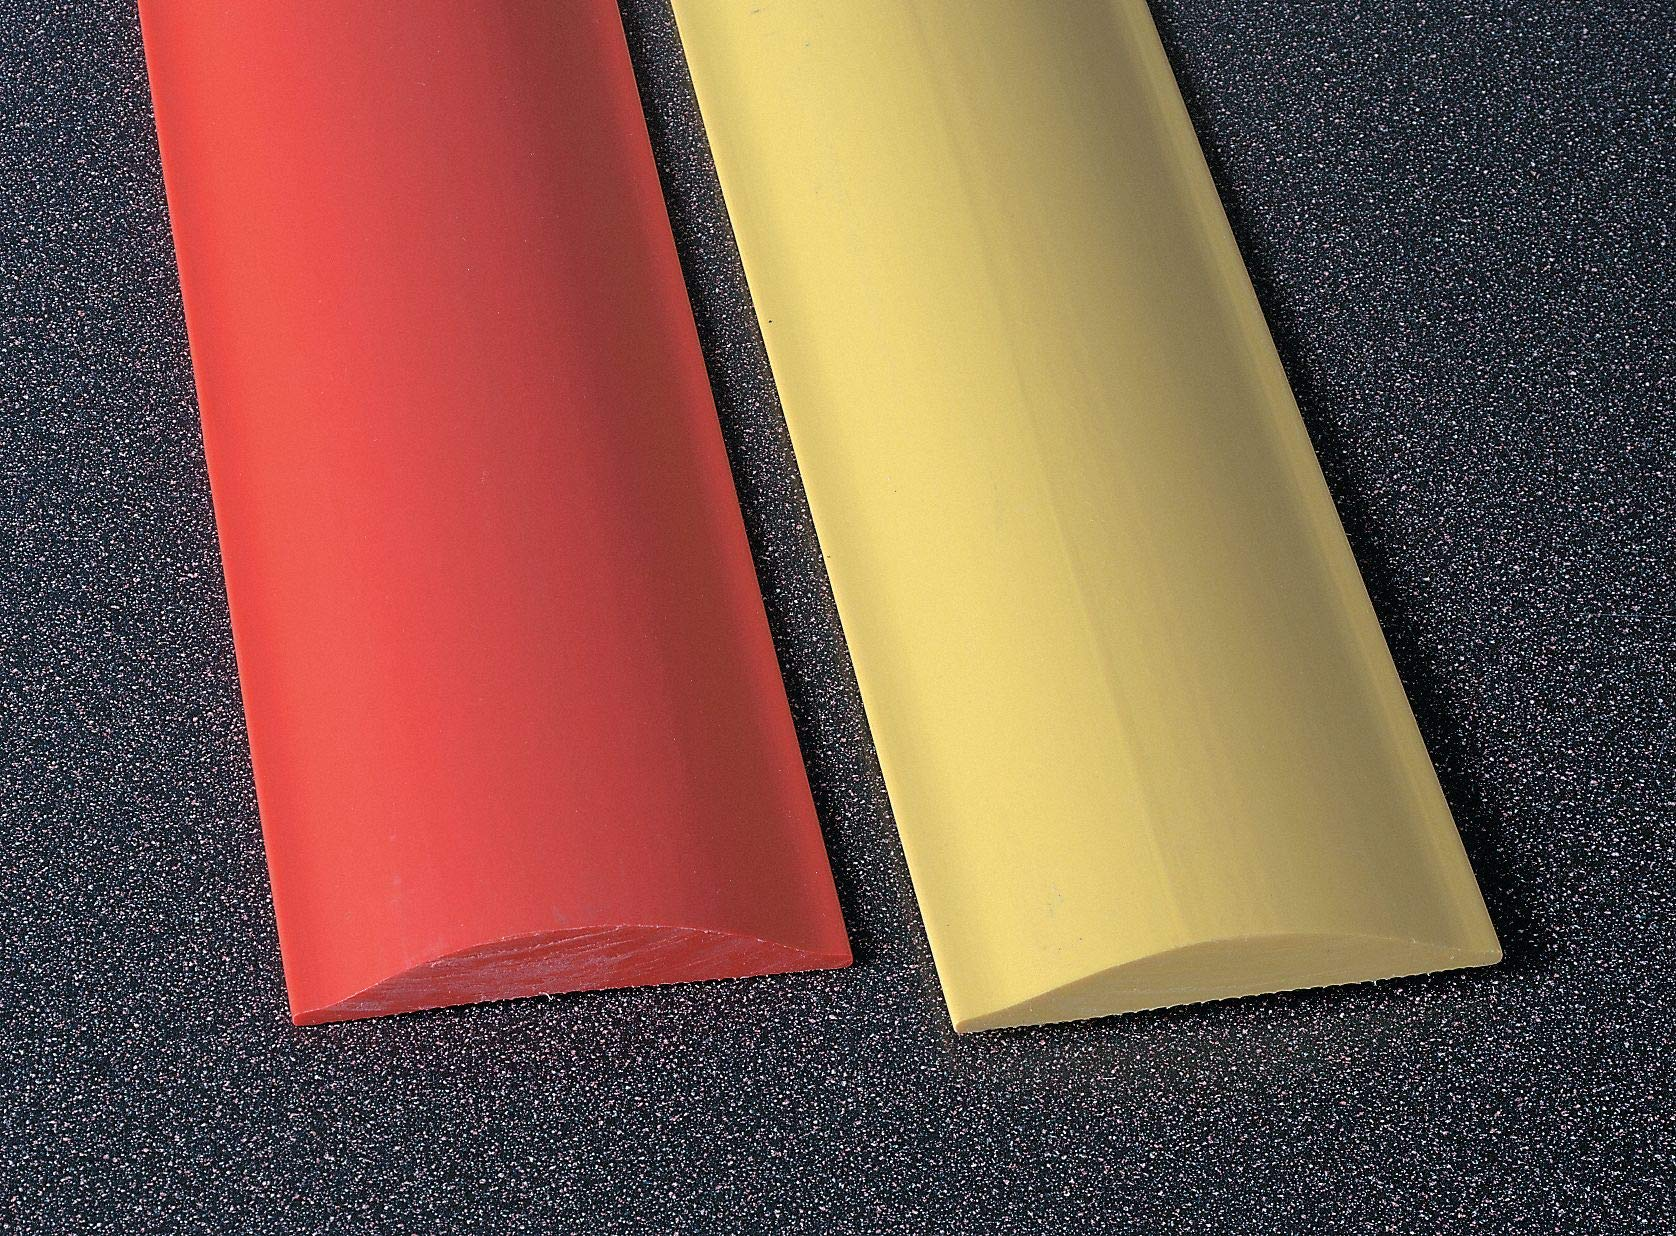 Rumble Strip, Thermoplastic Alloy, 6 ft. x 1/2'' x 4'', Red, 2500 psi